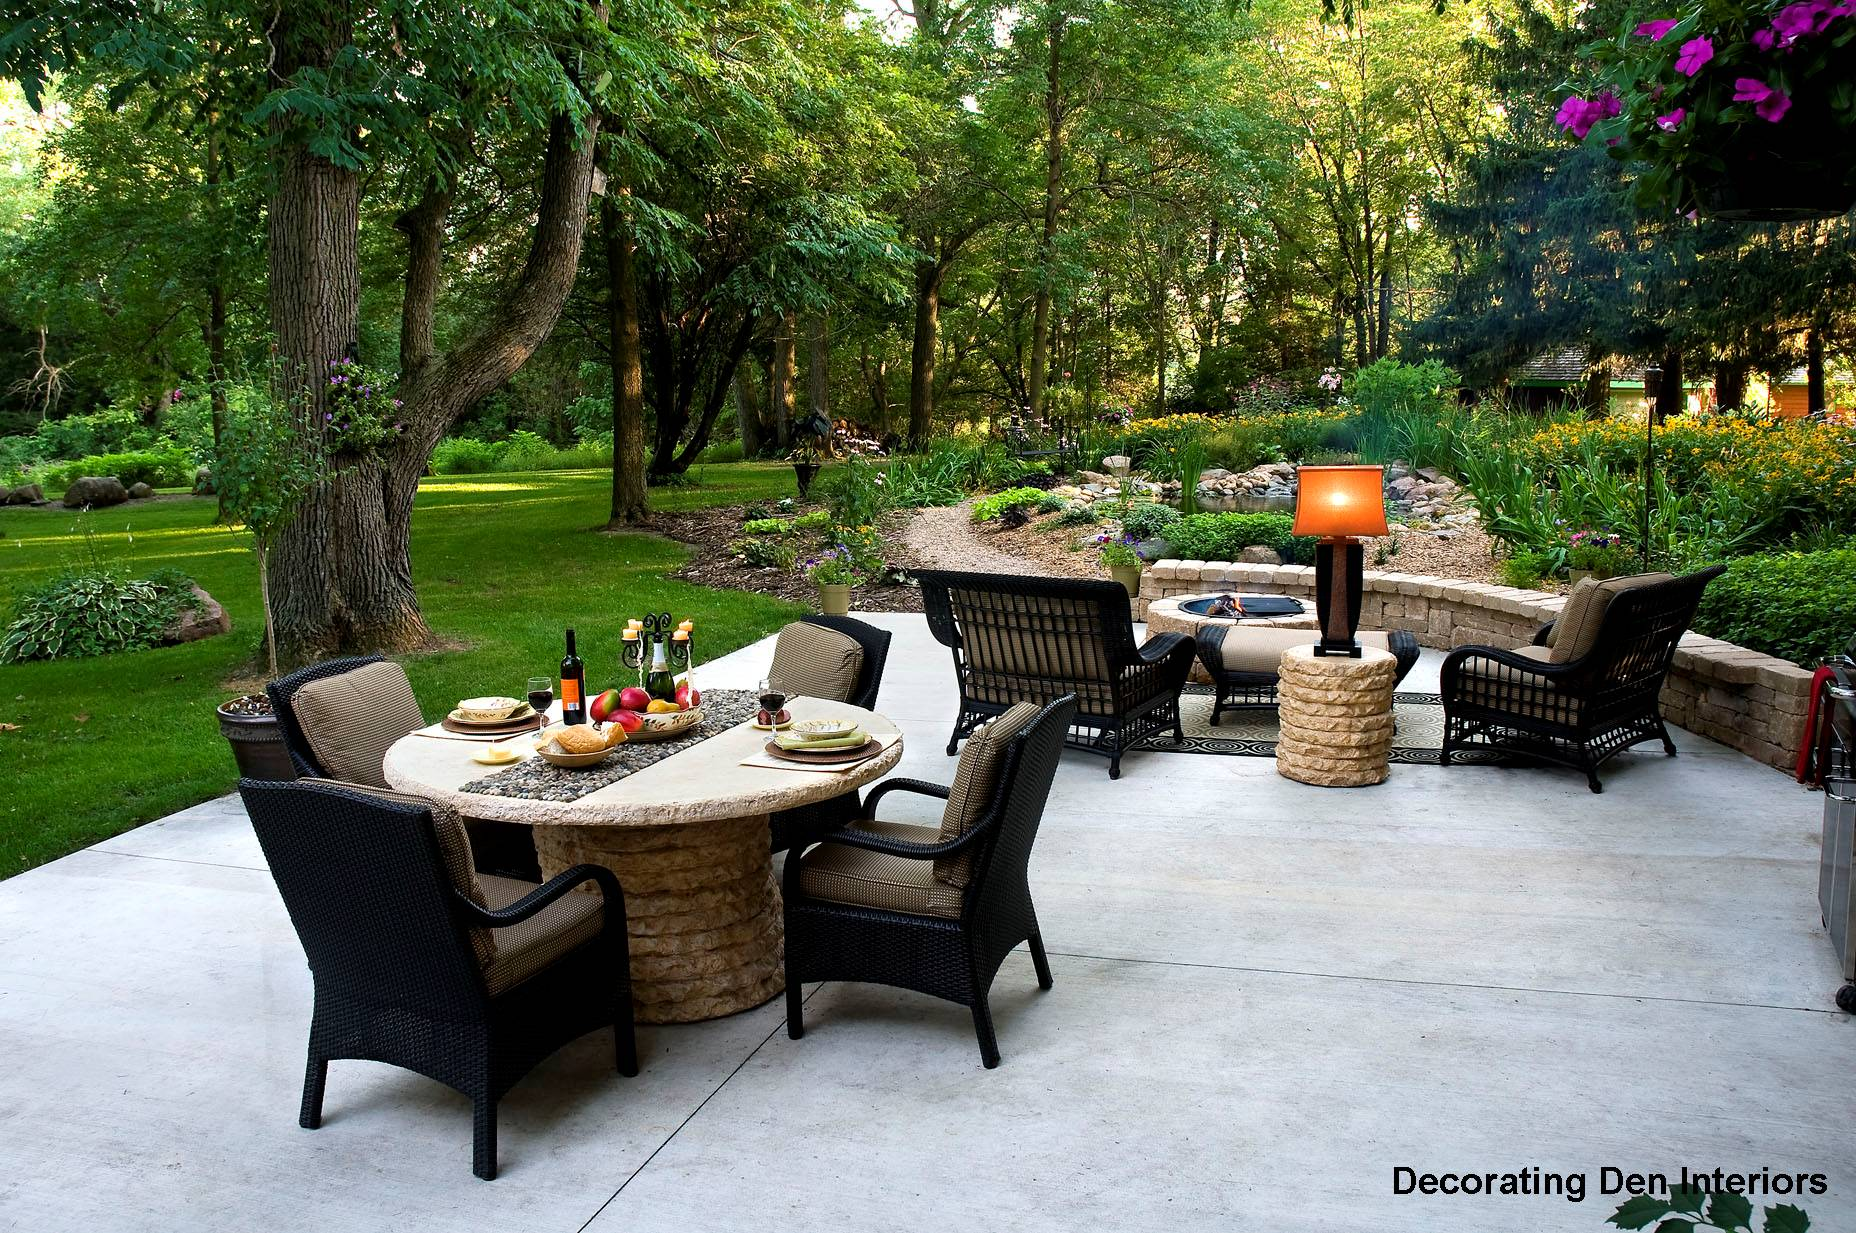 inspiration tips for decorating outdoor rooms devine 19663 | patio furniture portland